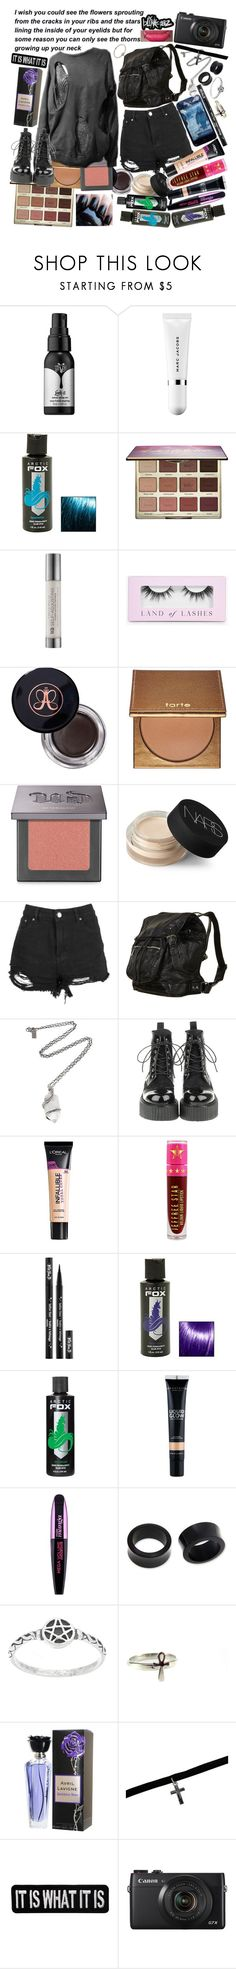 """""""And sometimes I relapse as I go through my days, because without you it's just not the same, part of my family was taken away"""" by thelyricsmatter ❤ liked on Polyvore featuring Kat Von D, Marc Jacobs, Hot Topic, tarte, Urban Decay, Boohoo, Anastasia Beverly Hills, NARS Cosmetics, Pamela Love and L'Oréal Paris"""